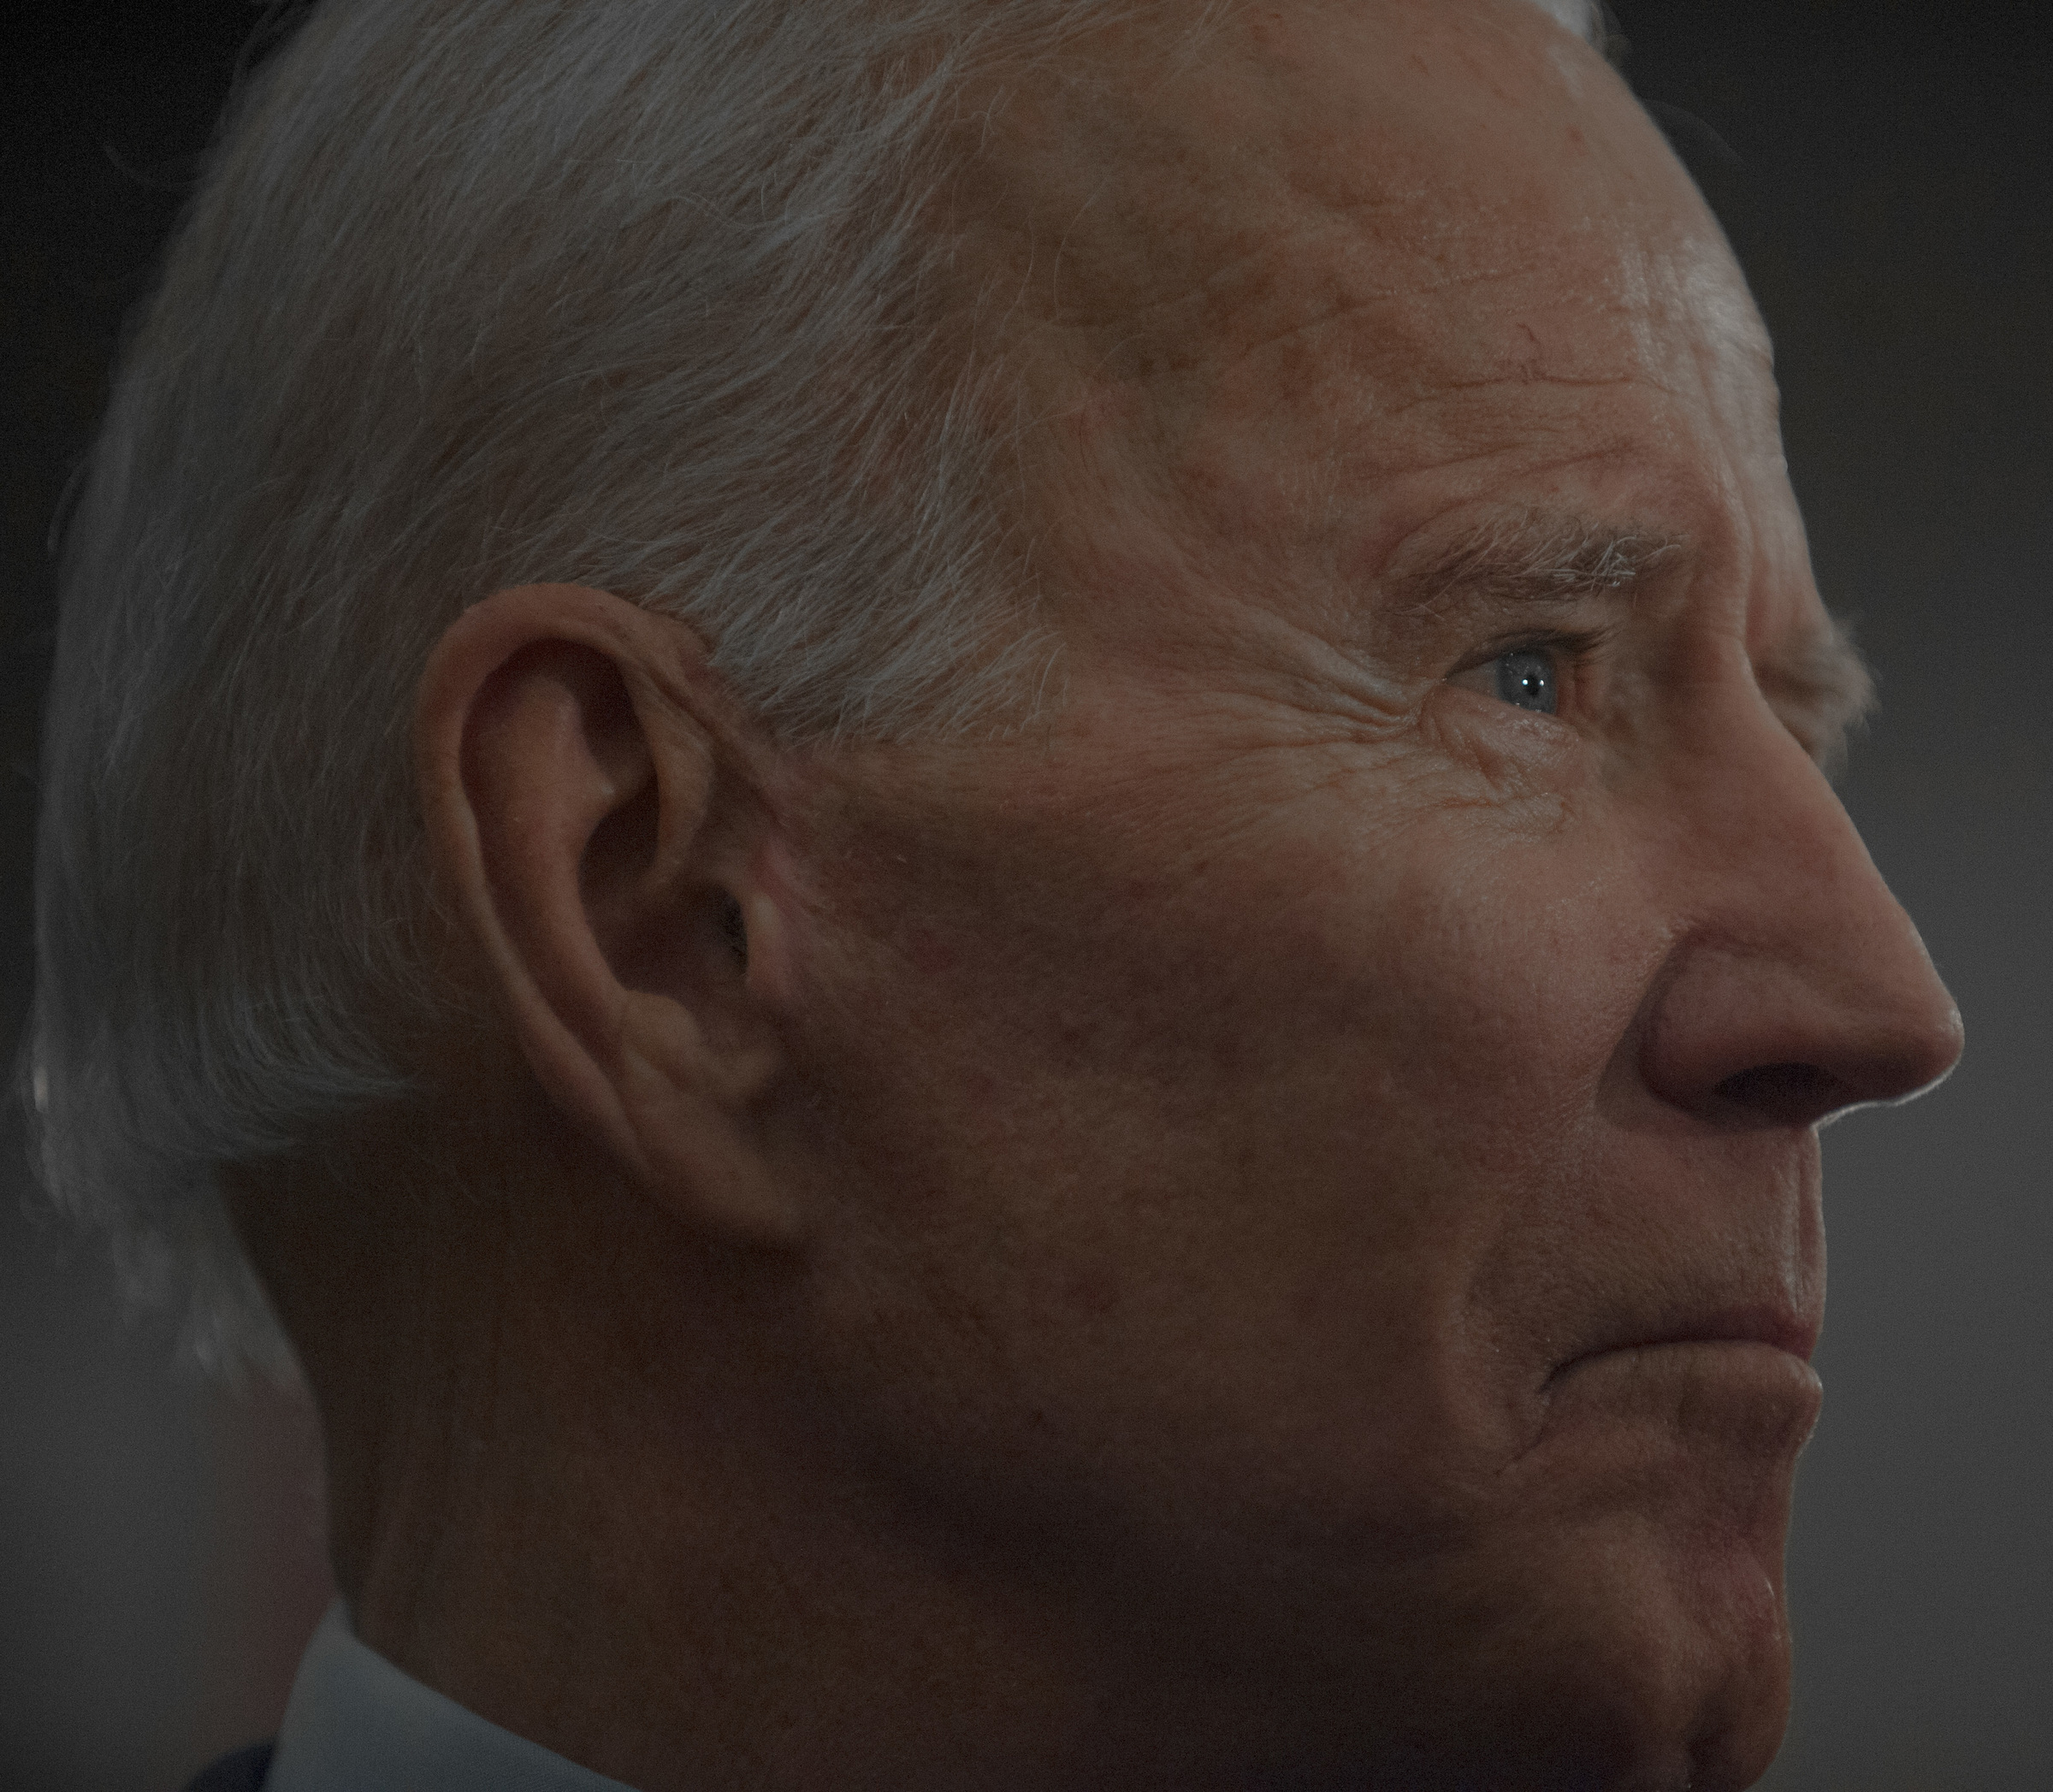 Joe Biden, presidential candidate and former Vice President, speaks to his supporters in Fort Dodge, Iowa, on Jan. 21.